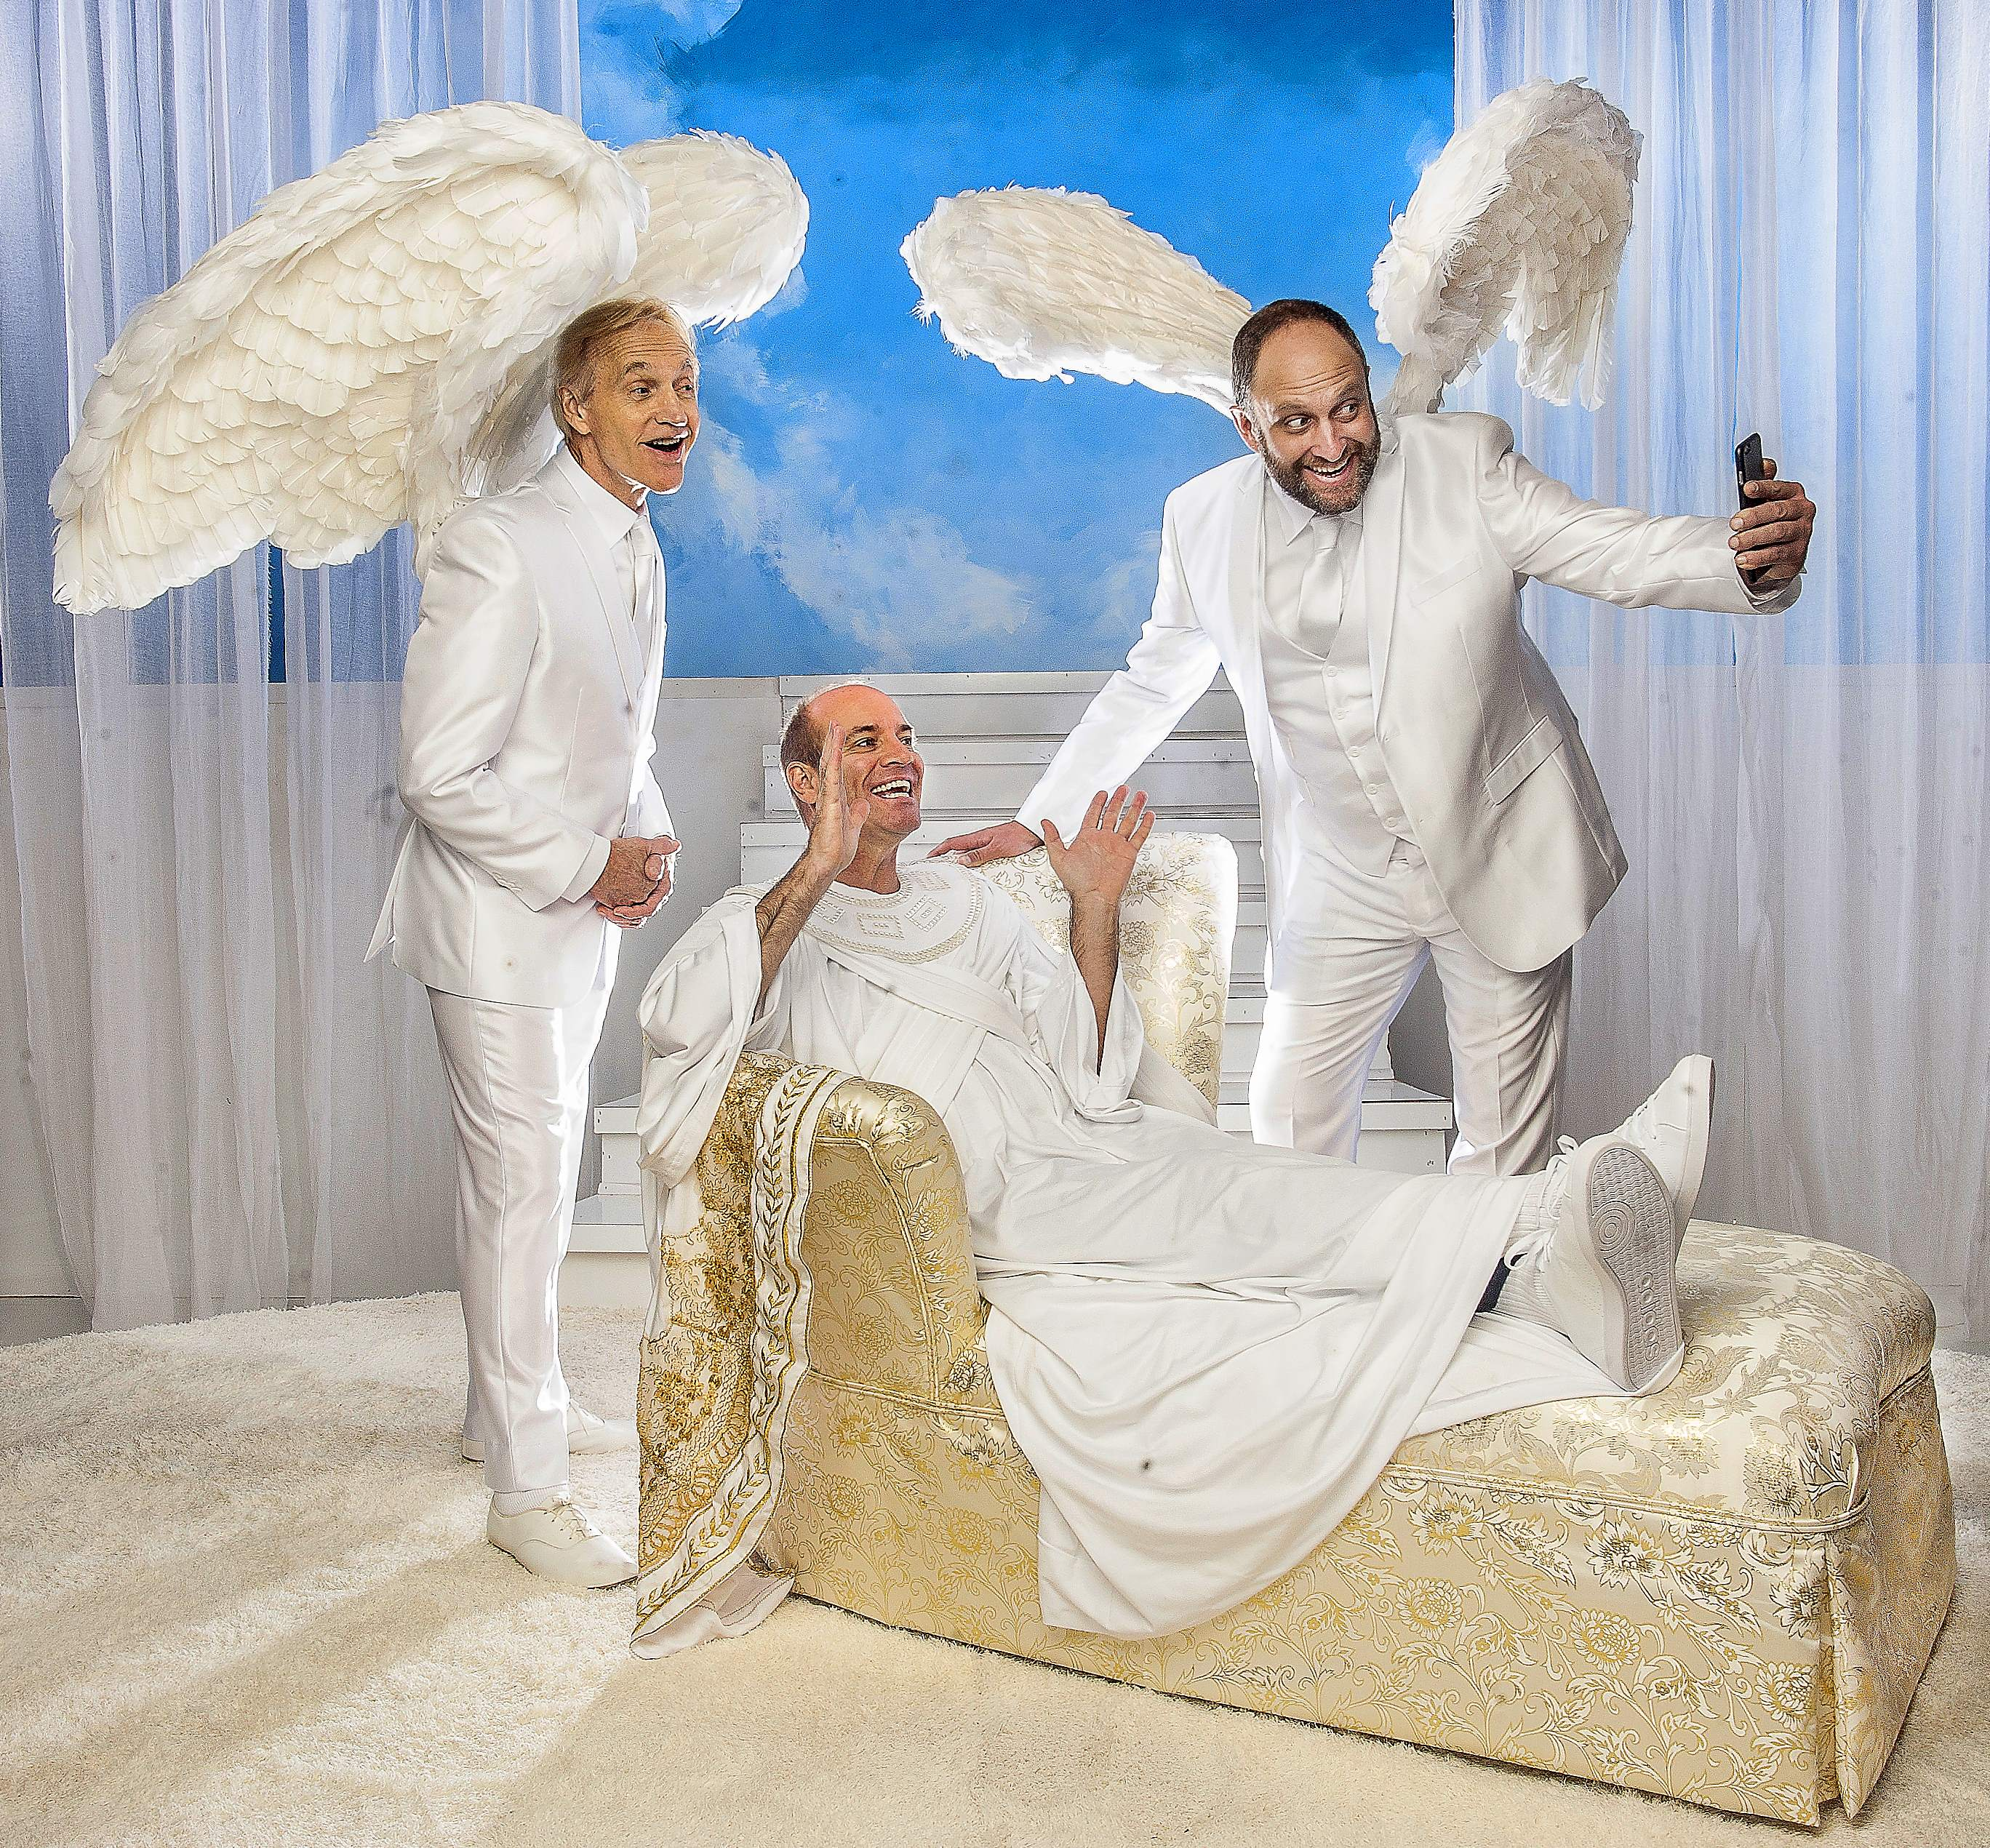 BWW Review: AN ACT OF GOD at GableStage - Orgasmic Cries to God Now a No No